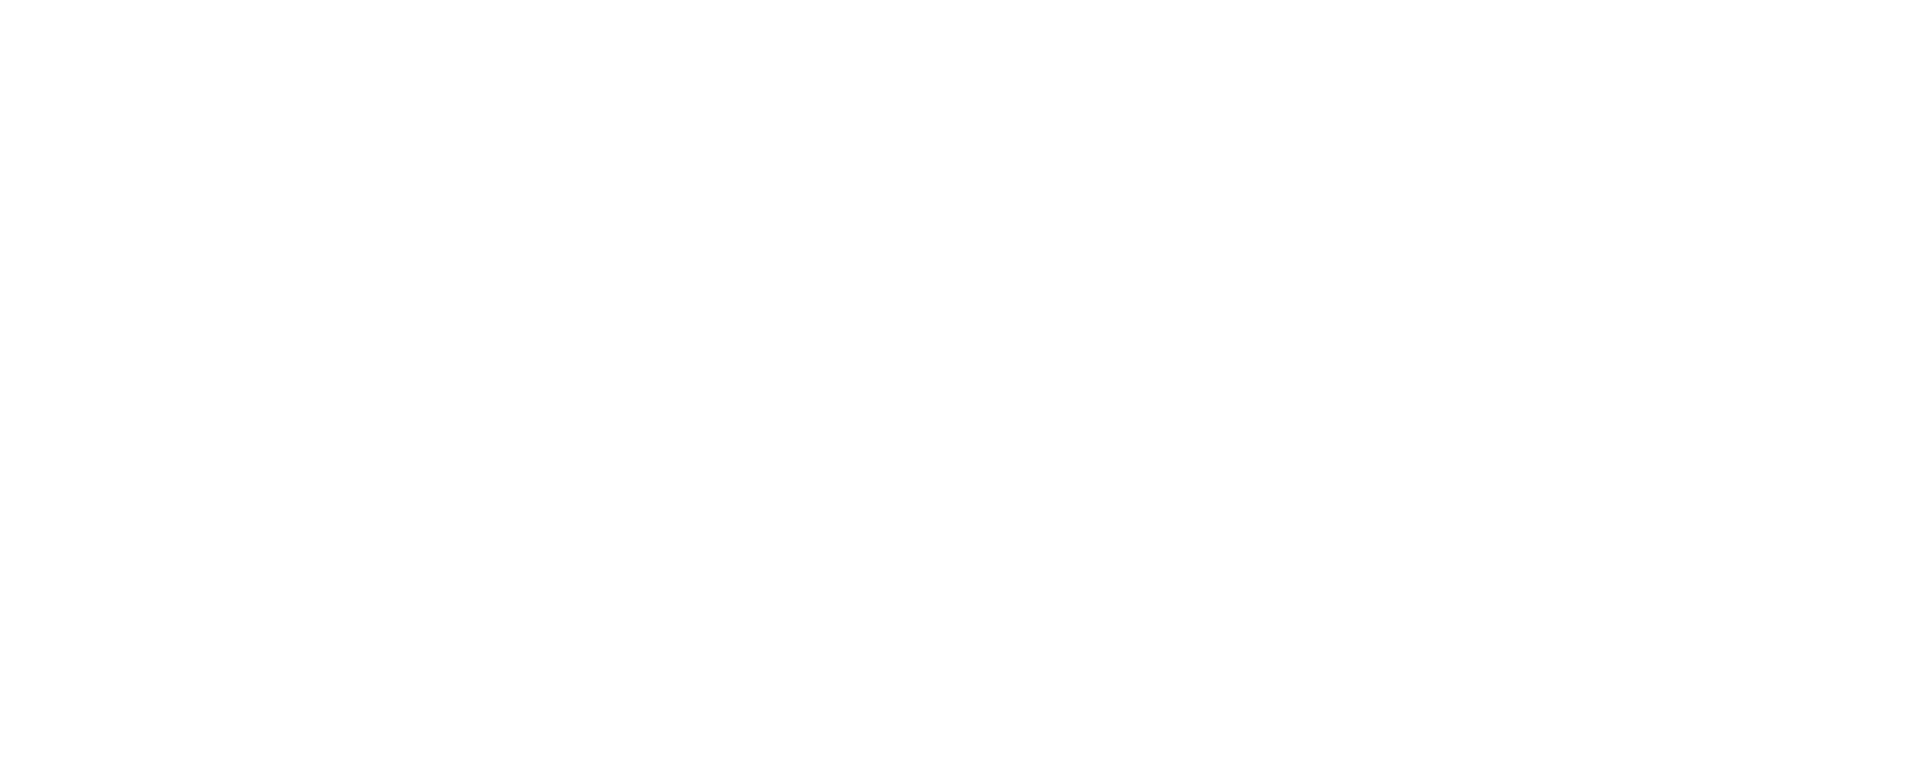 Relish 670 Bar and Cookhouse logo